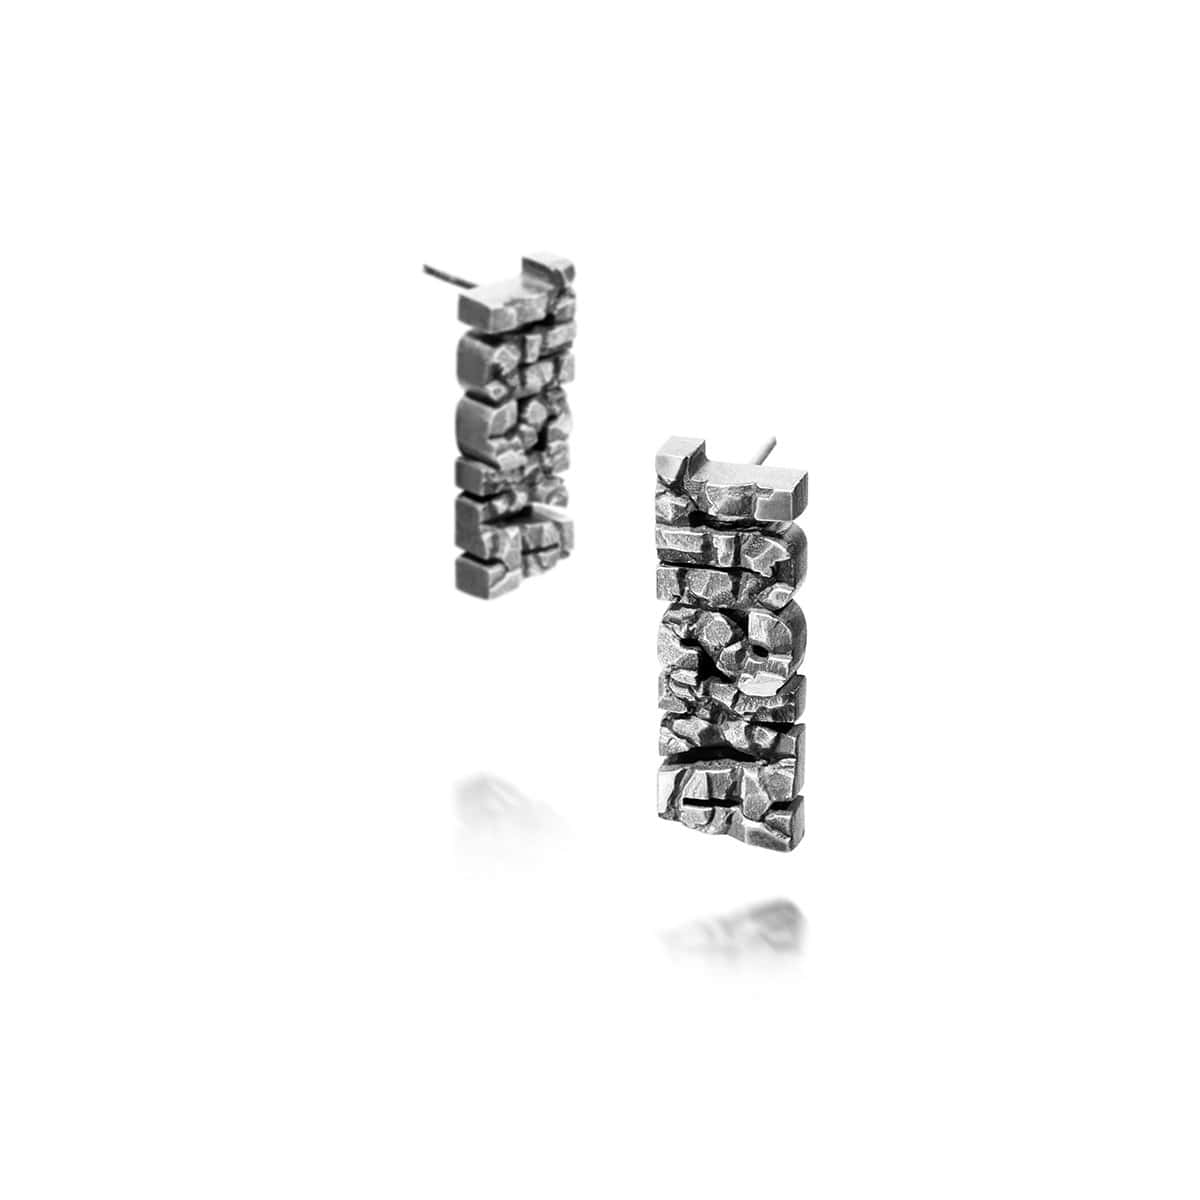 Tuska Sterling Silver Stud Earrings